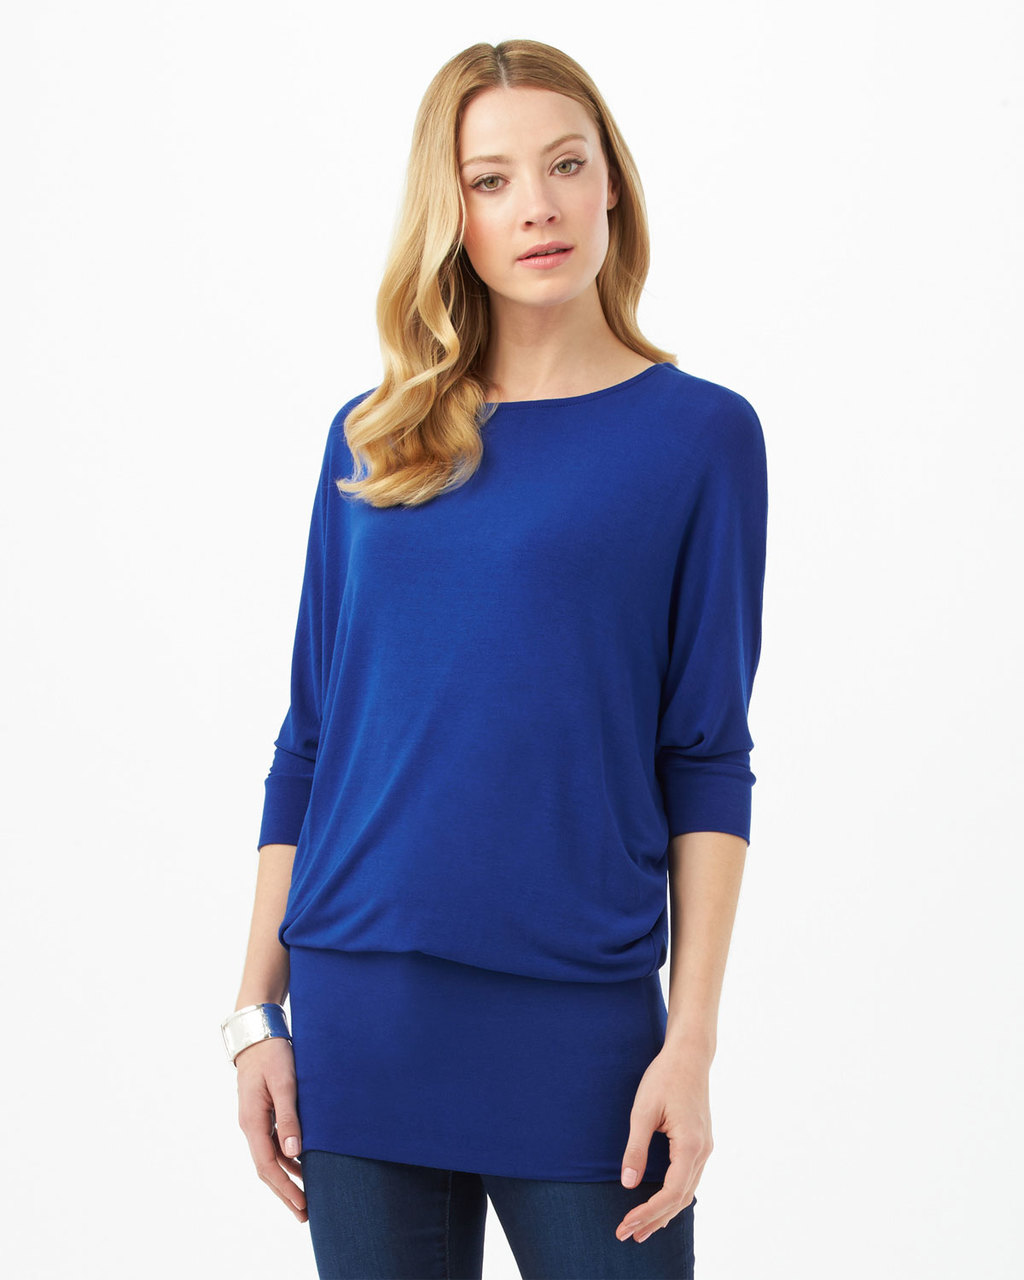 Beth Dress - style: tunic; length: below the knee; pattern: plain; predominant colour: royal blue; occasions: casual; fit: body skimming; fibres: viscose/rayon - stretch; neckline: crew; sleeve length: 3/4 length; sleeve style: standard; pattern type: fabric; texture group: jersey - stretchy/drapey; season: s/s 2016; wardrobe: highlight